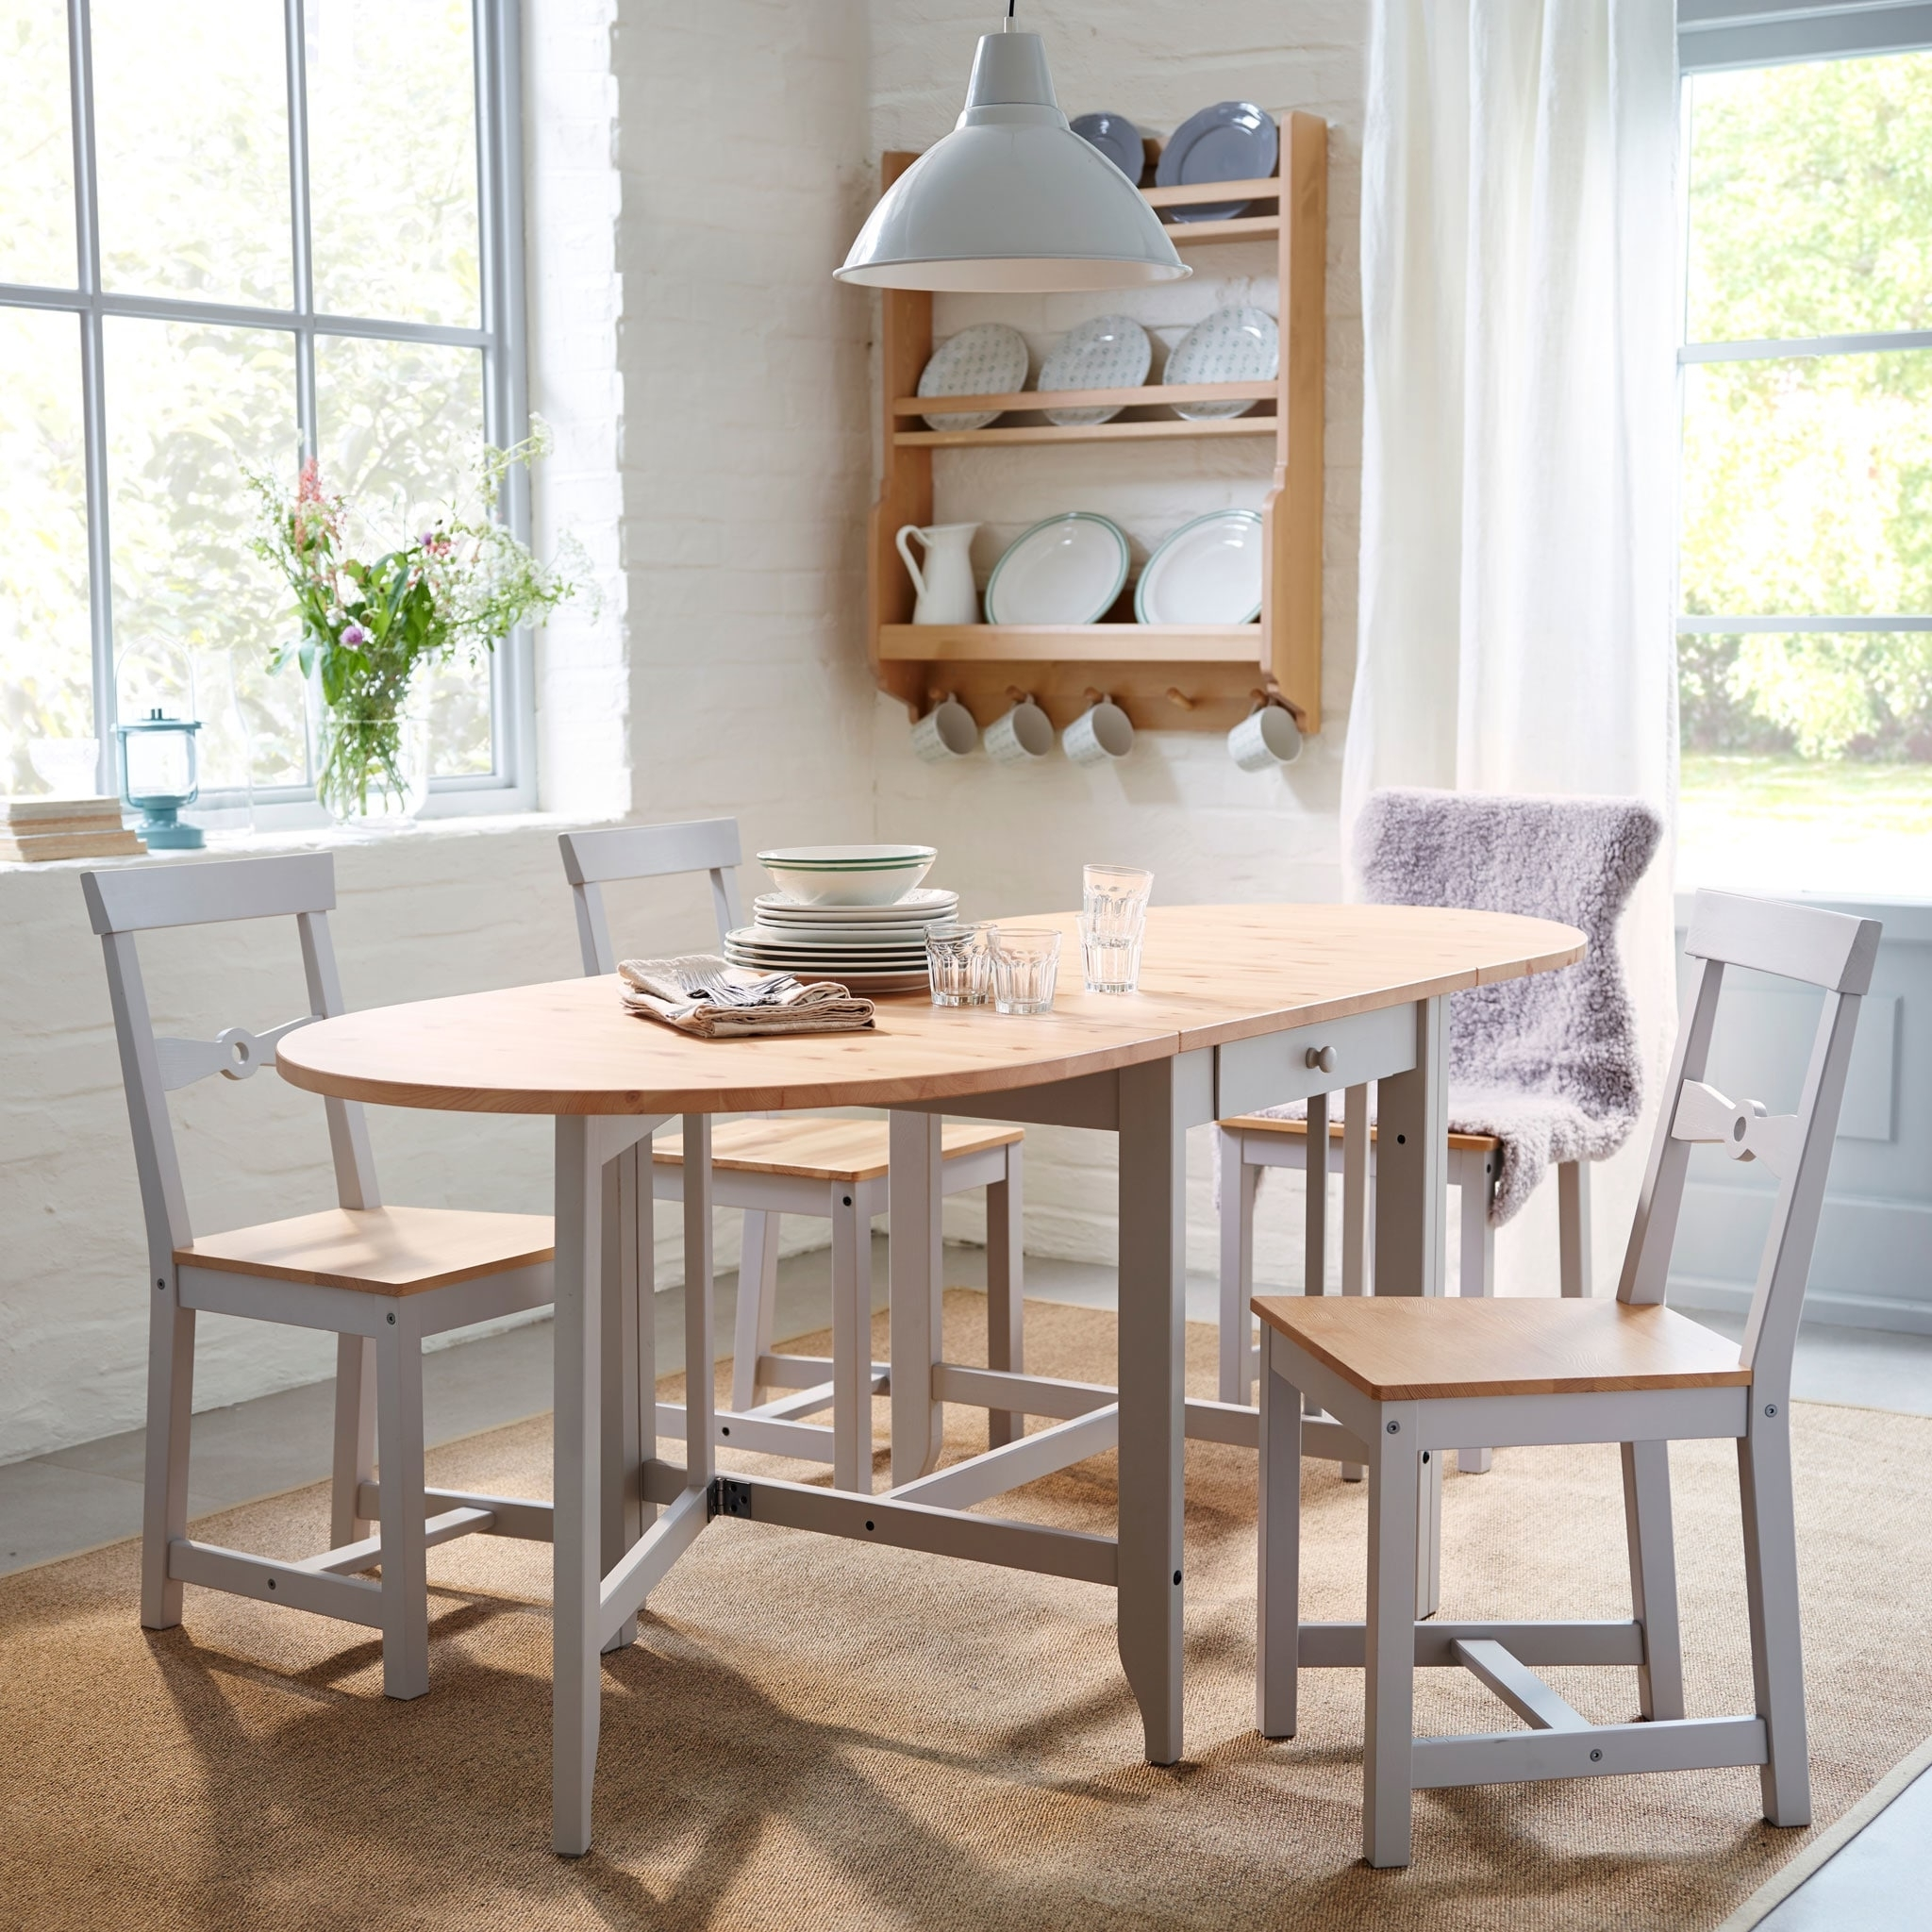 Dining Room Tables Within 2017 Dining Room Furniture & Ideas (View 12 of 25)